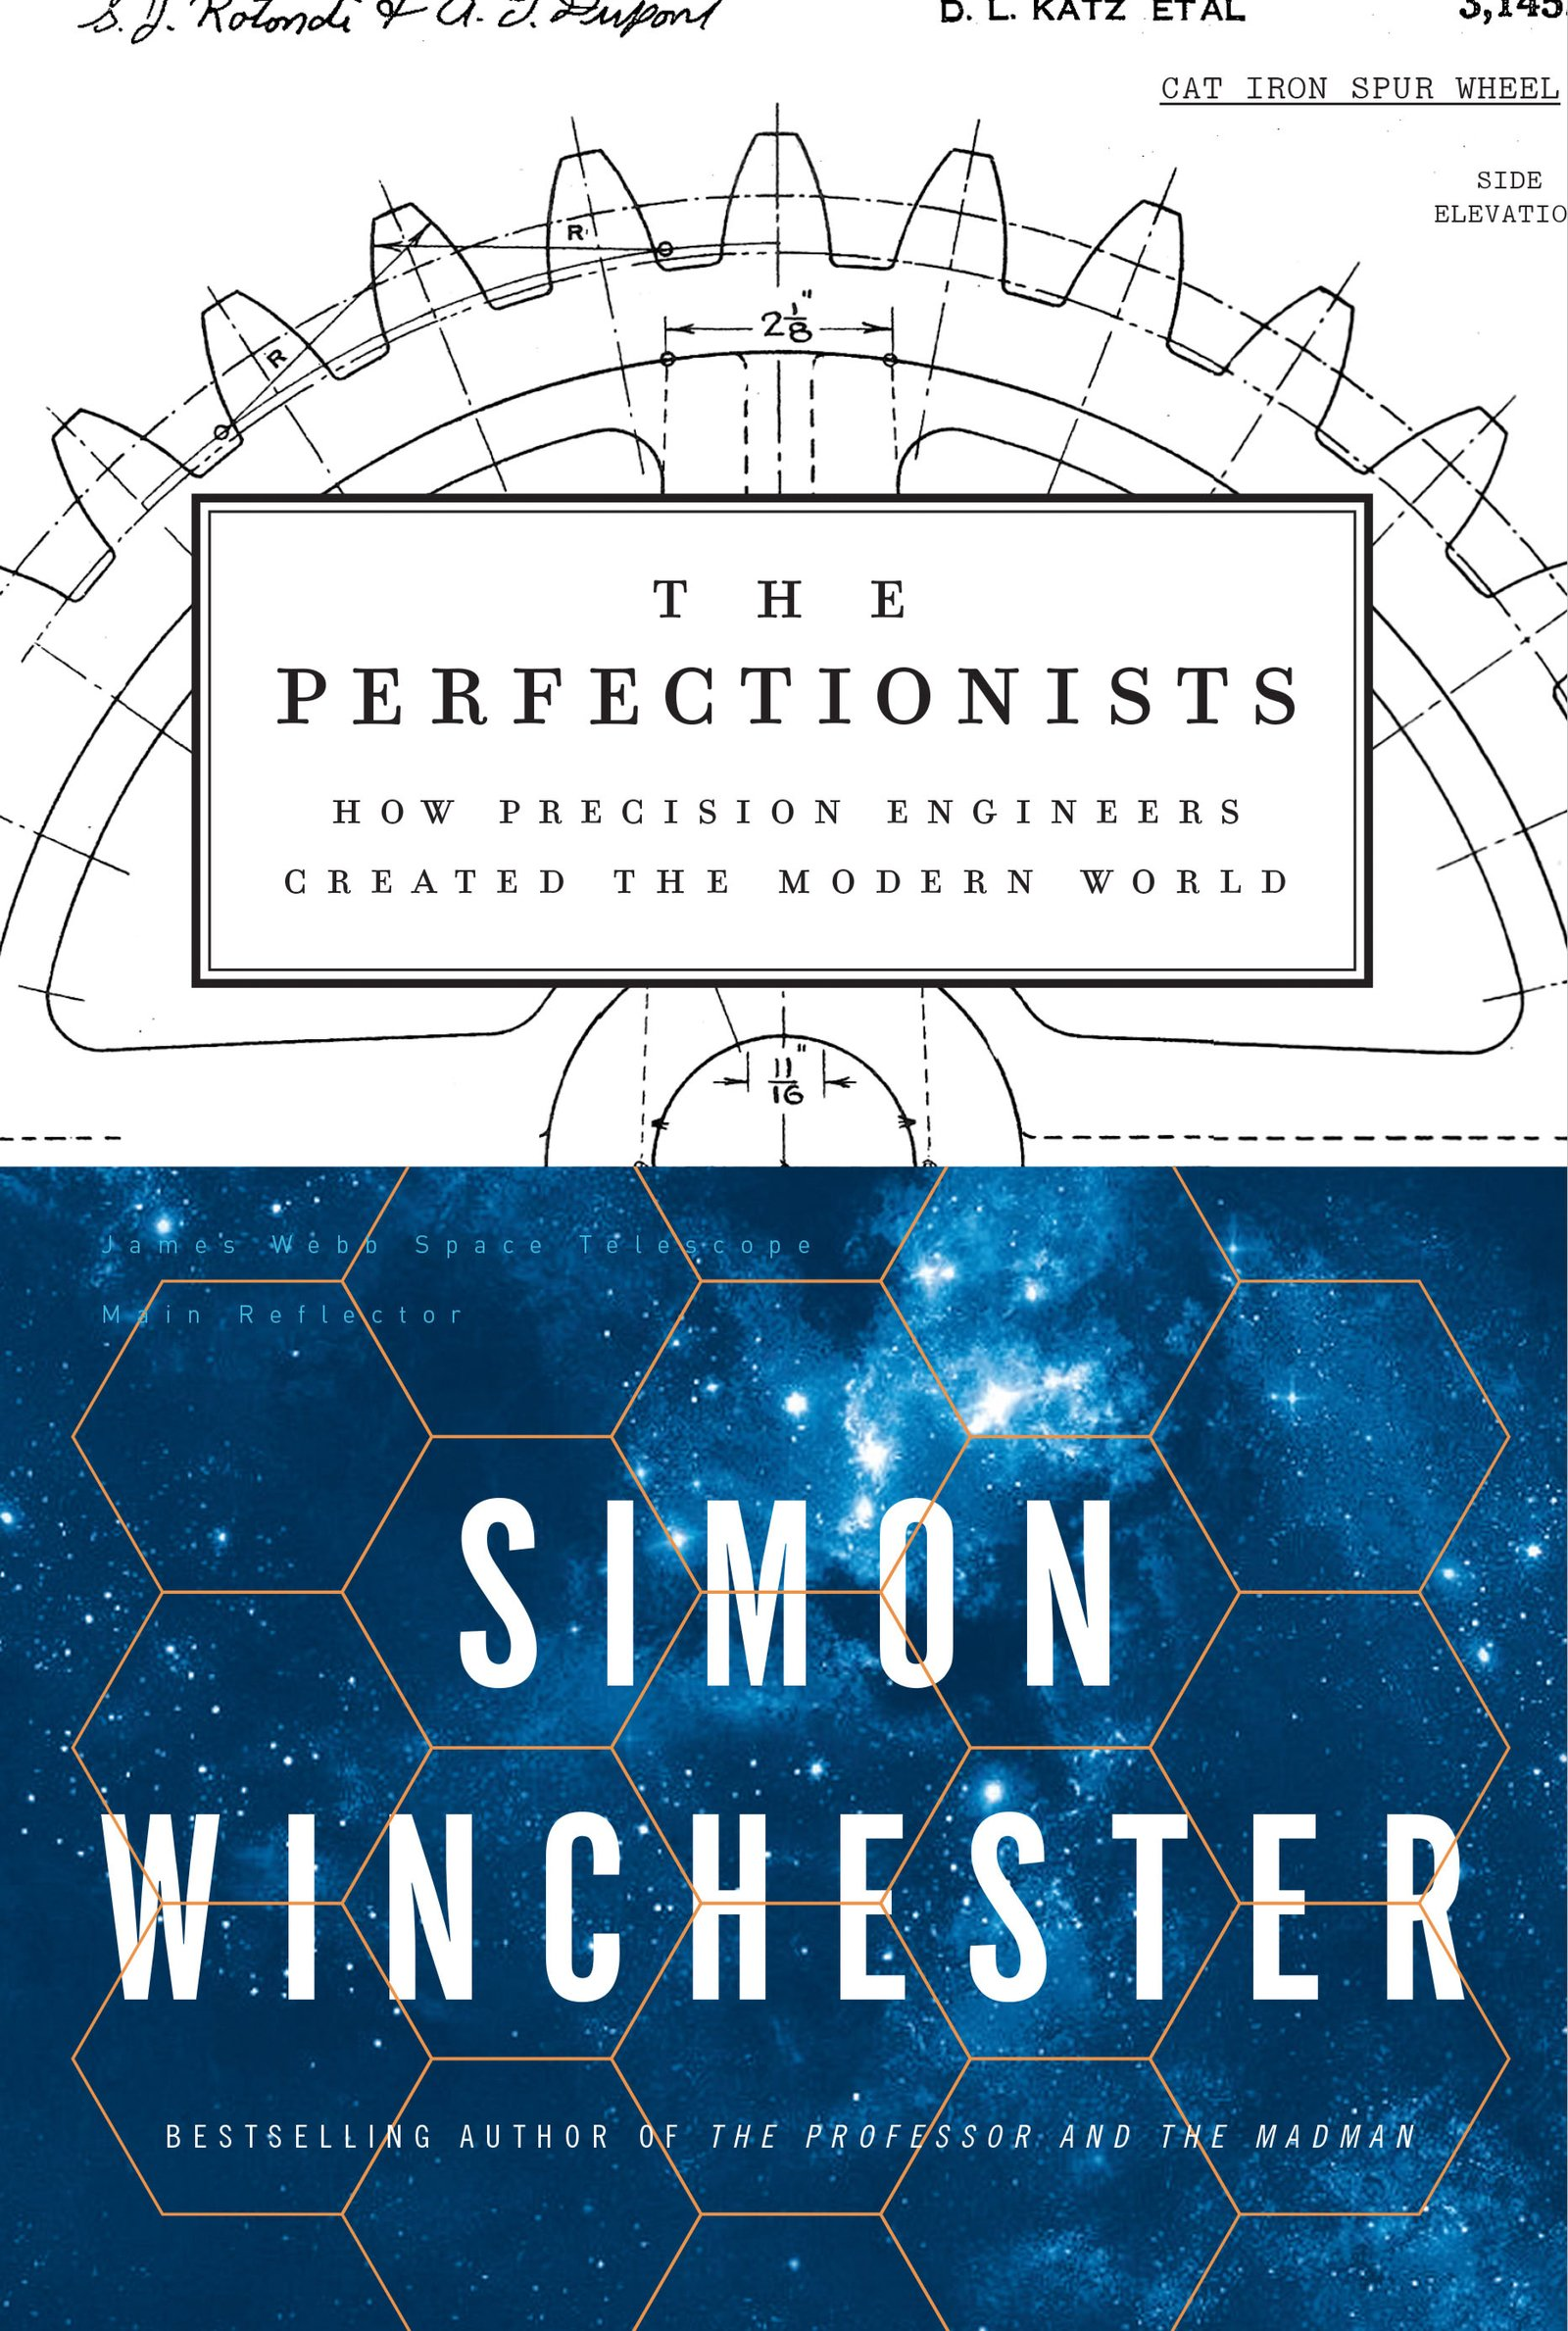 The Perfectionists: How Precision Engineers Created the Modern World pdf